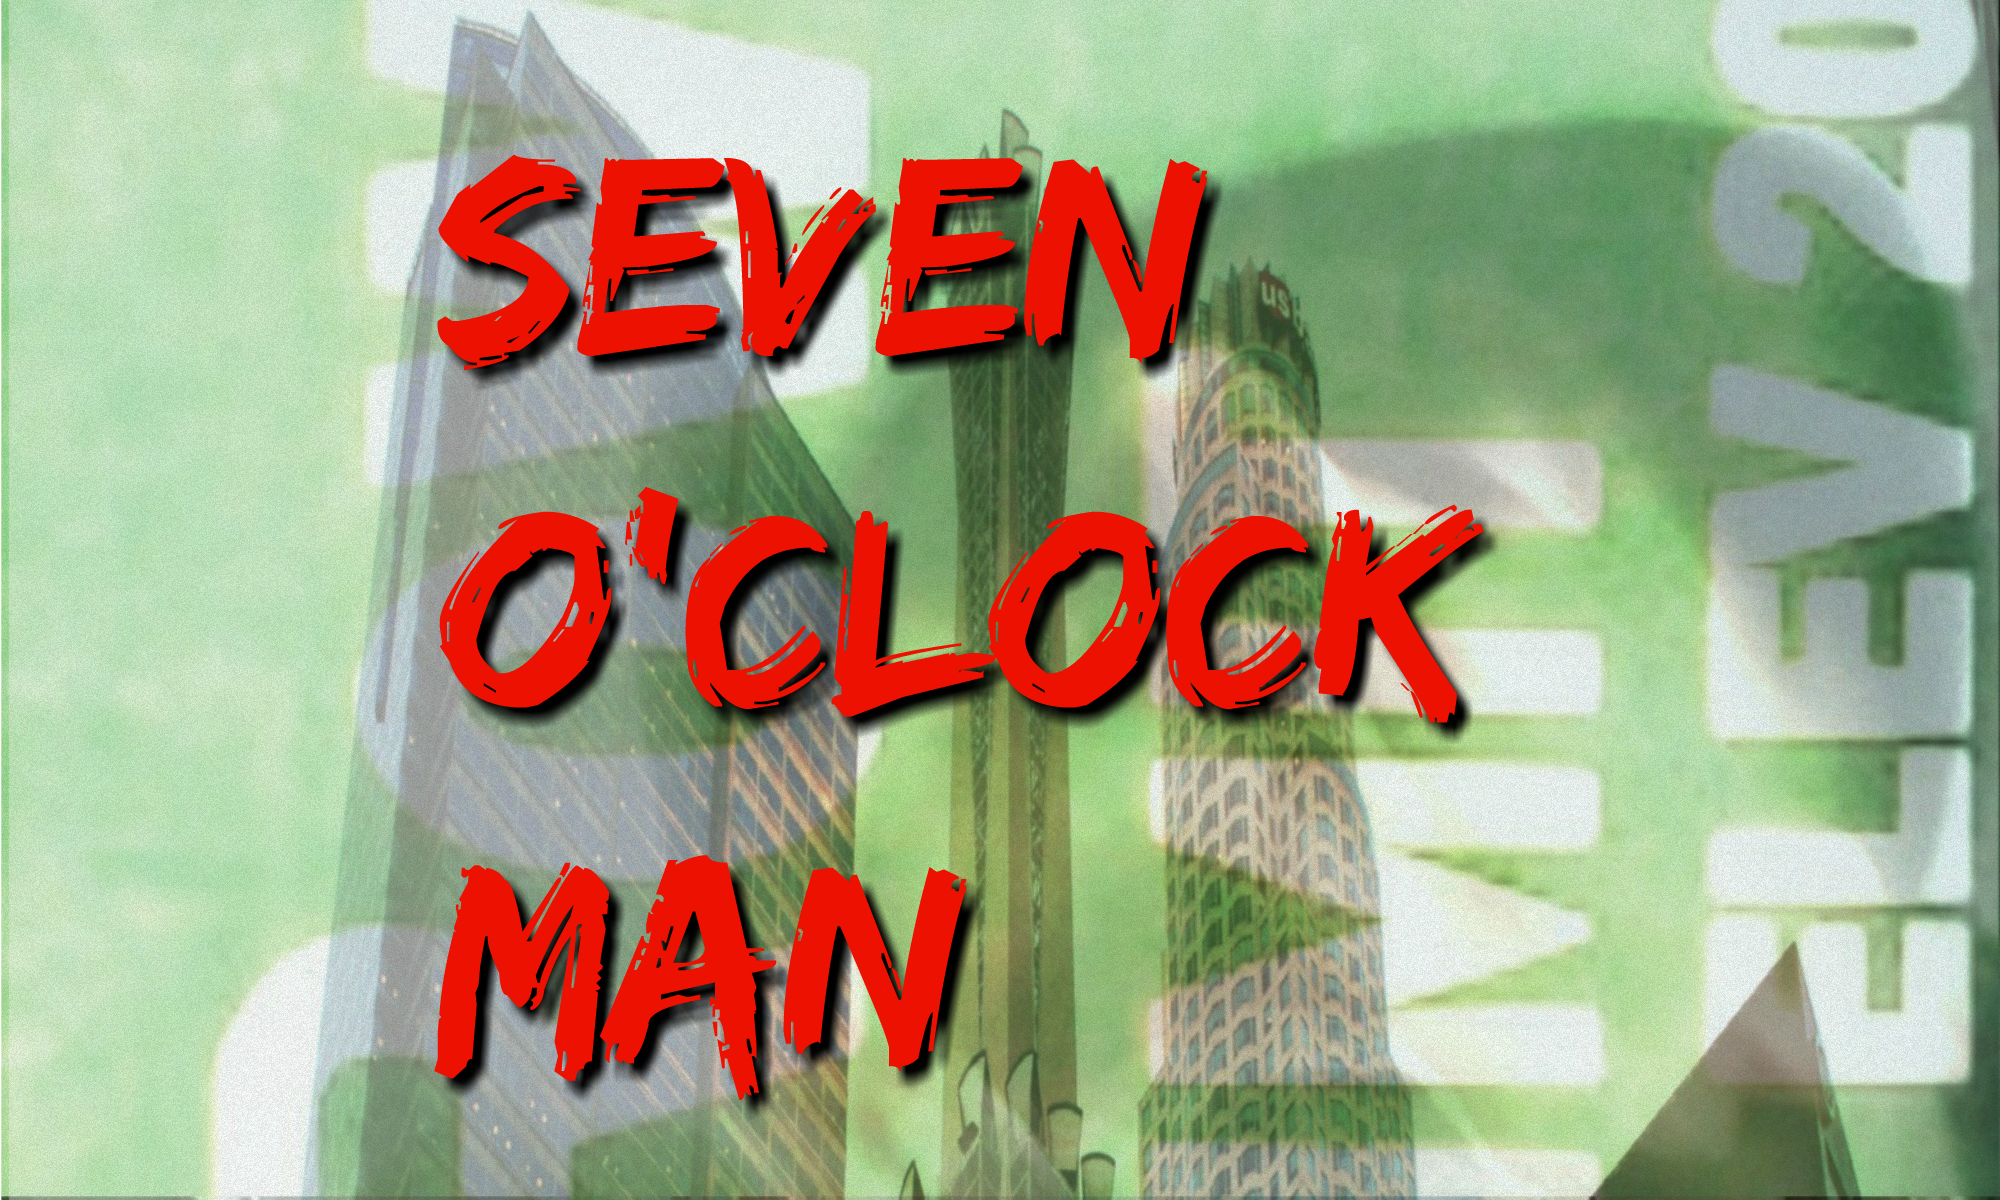 The Seven o'Clock Man is here for you